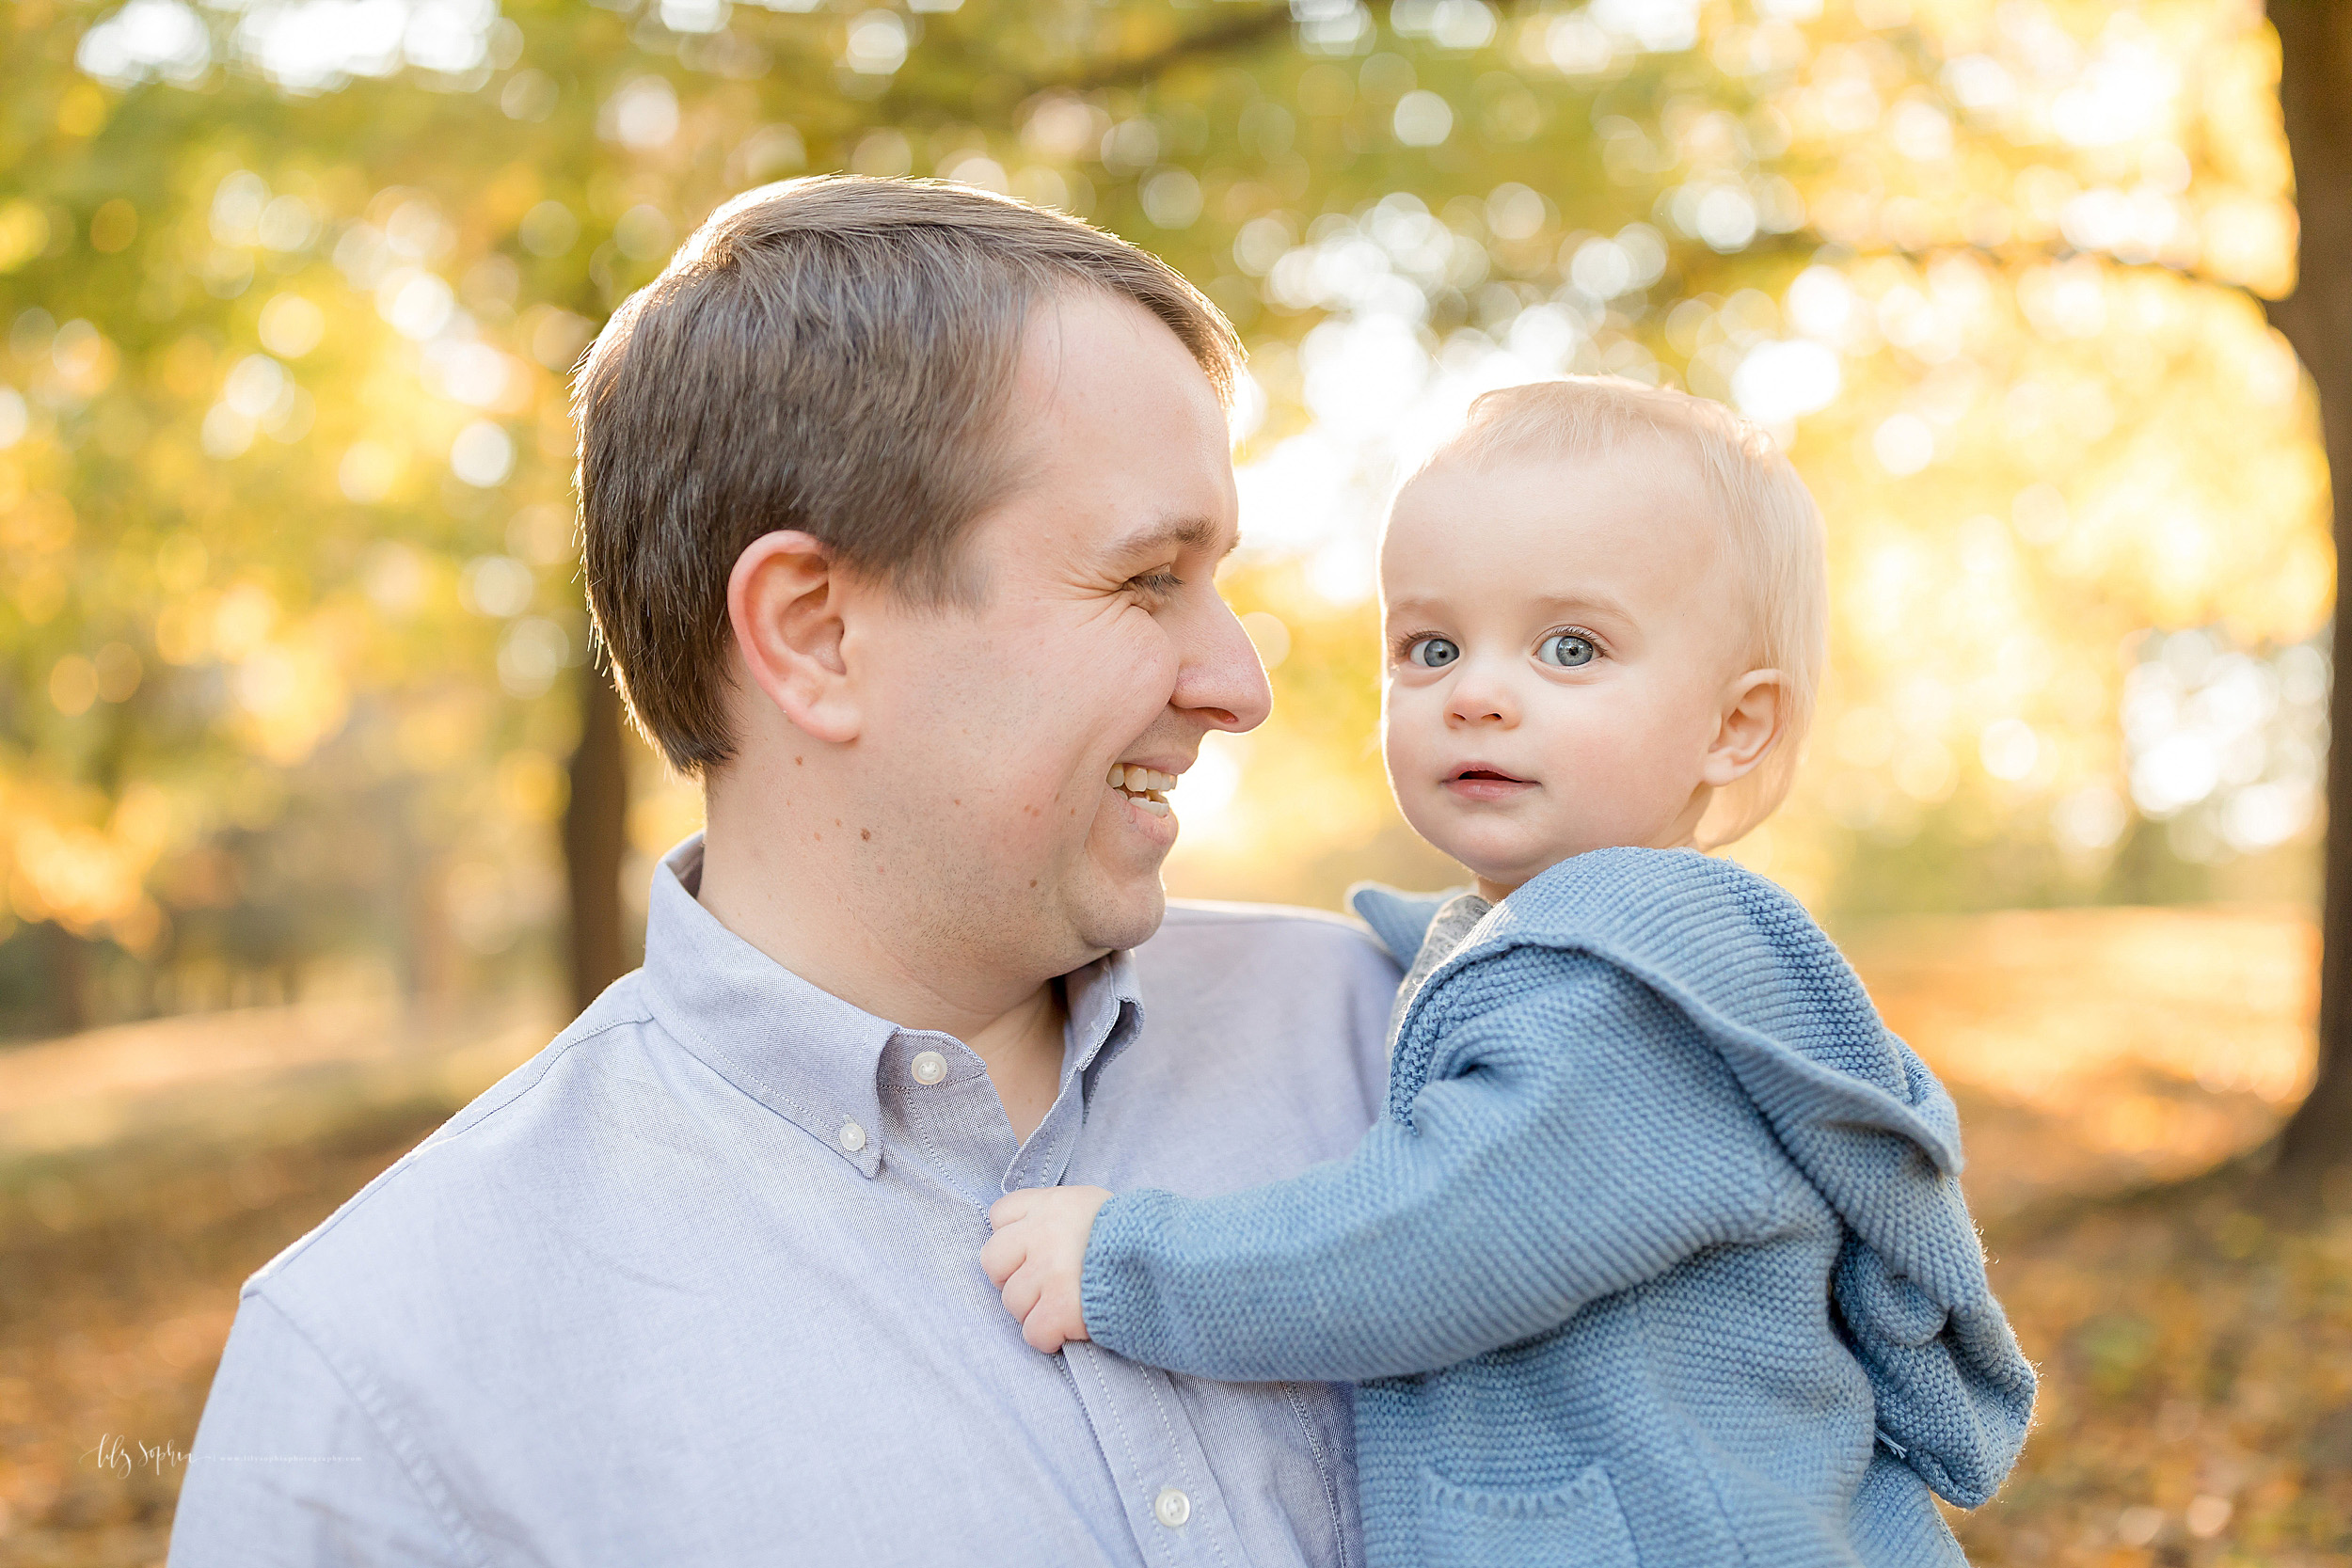 atlanta-brookhaven-decatur-sandy-springs-buckhead-virginia-highlands-west-end-decatur-lily-sophia-photography-ukraine-family-one-year-old-first-birthday-baby-boy-outdoor-fall-cake-smash_1523.jpg